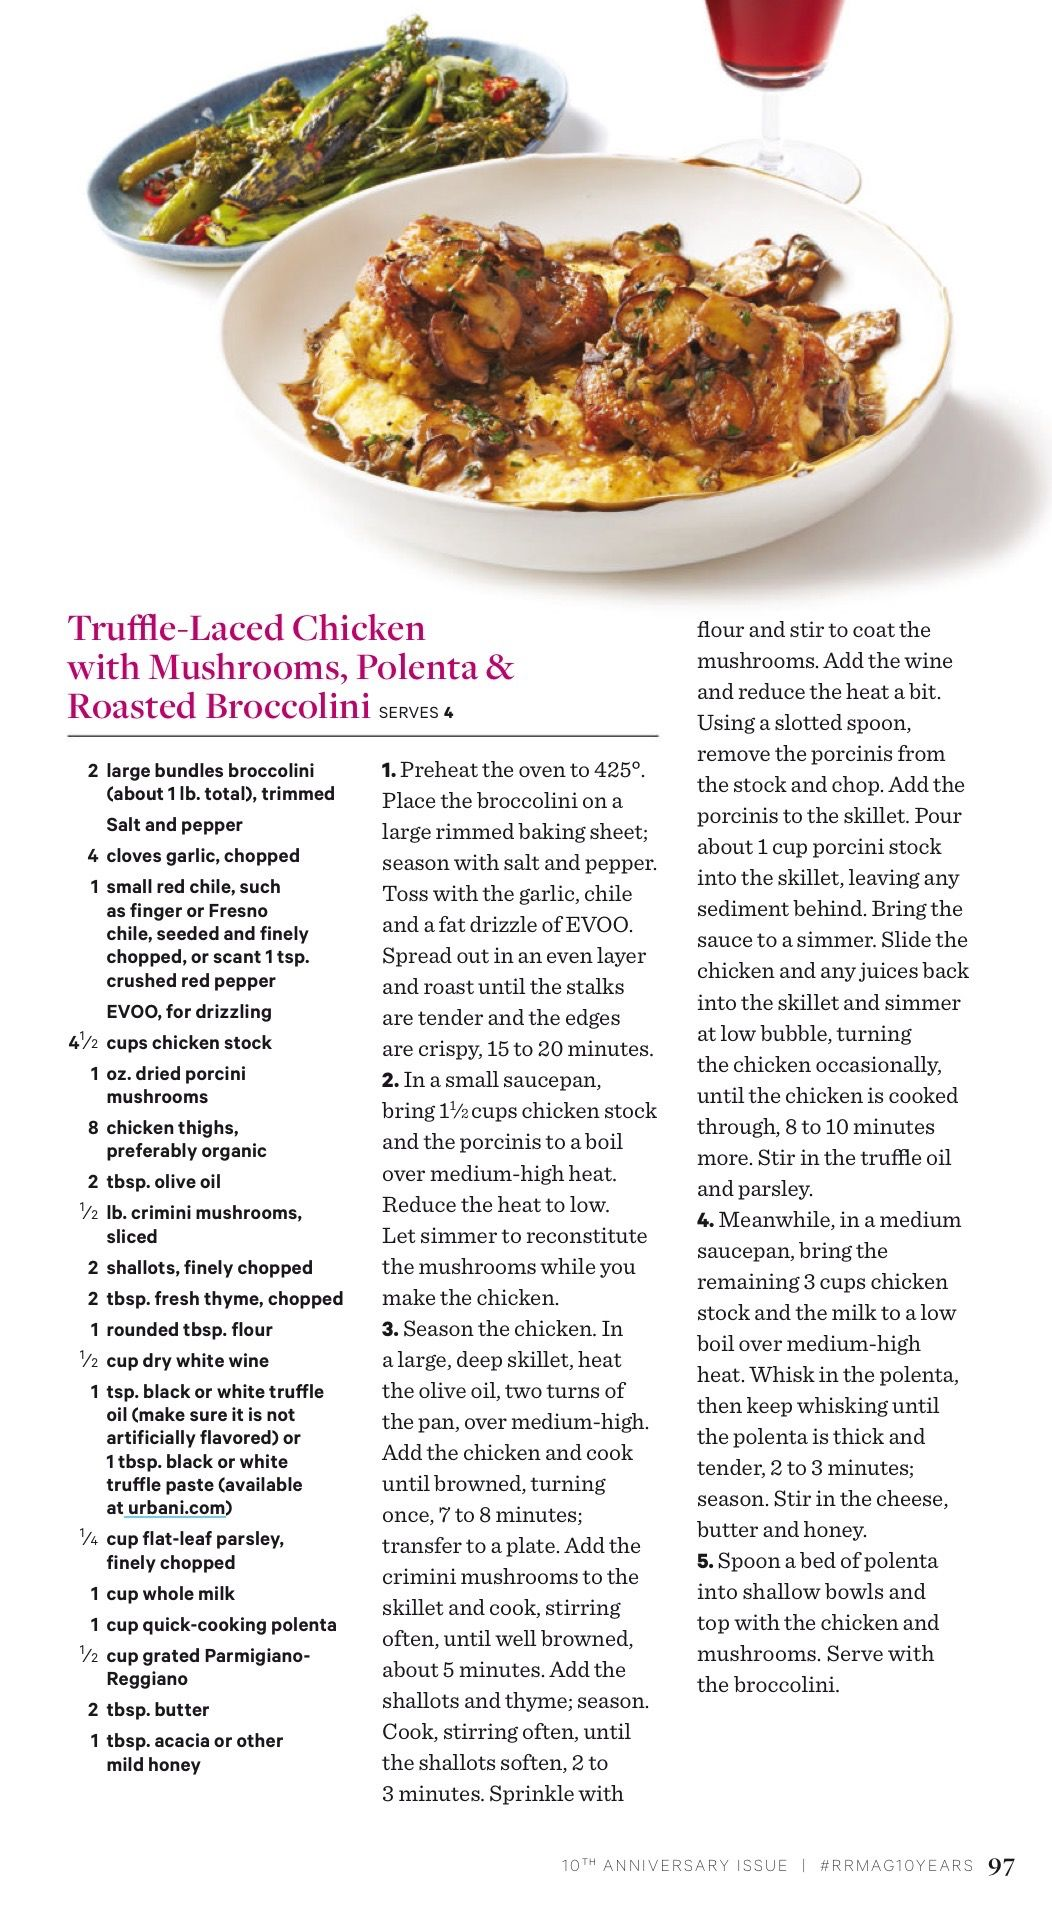 Pin by sue homemaker on recipes main courses pinterest recipe recipe cards main courses main dishes entrees main course dishes forumfinder Image collections